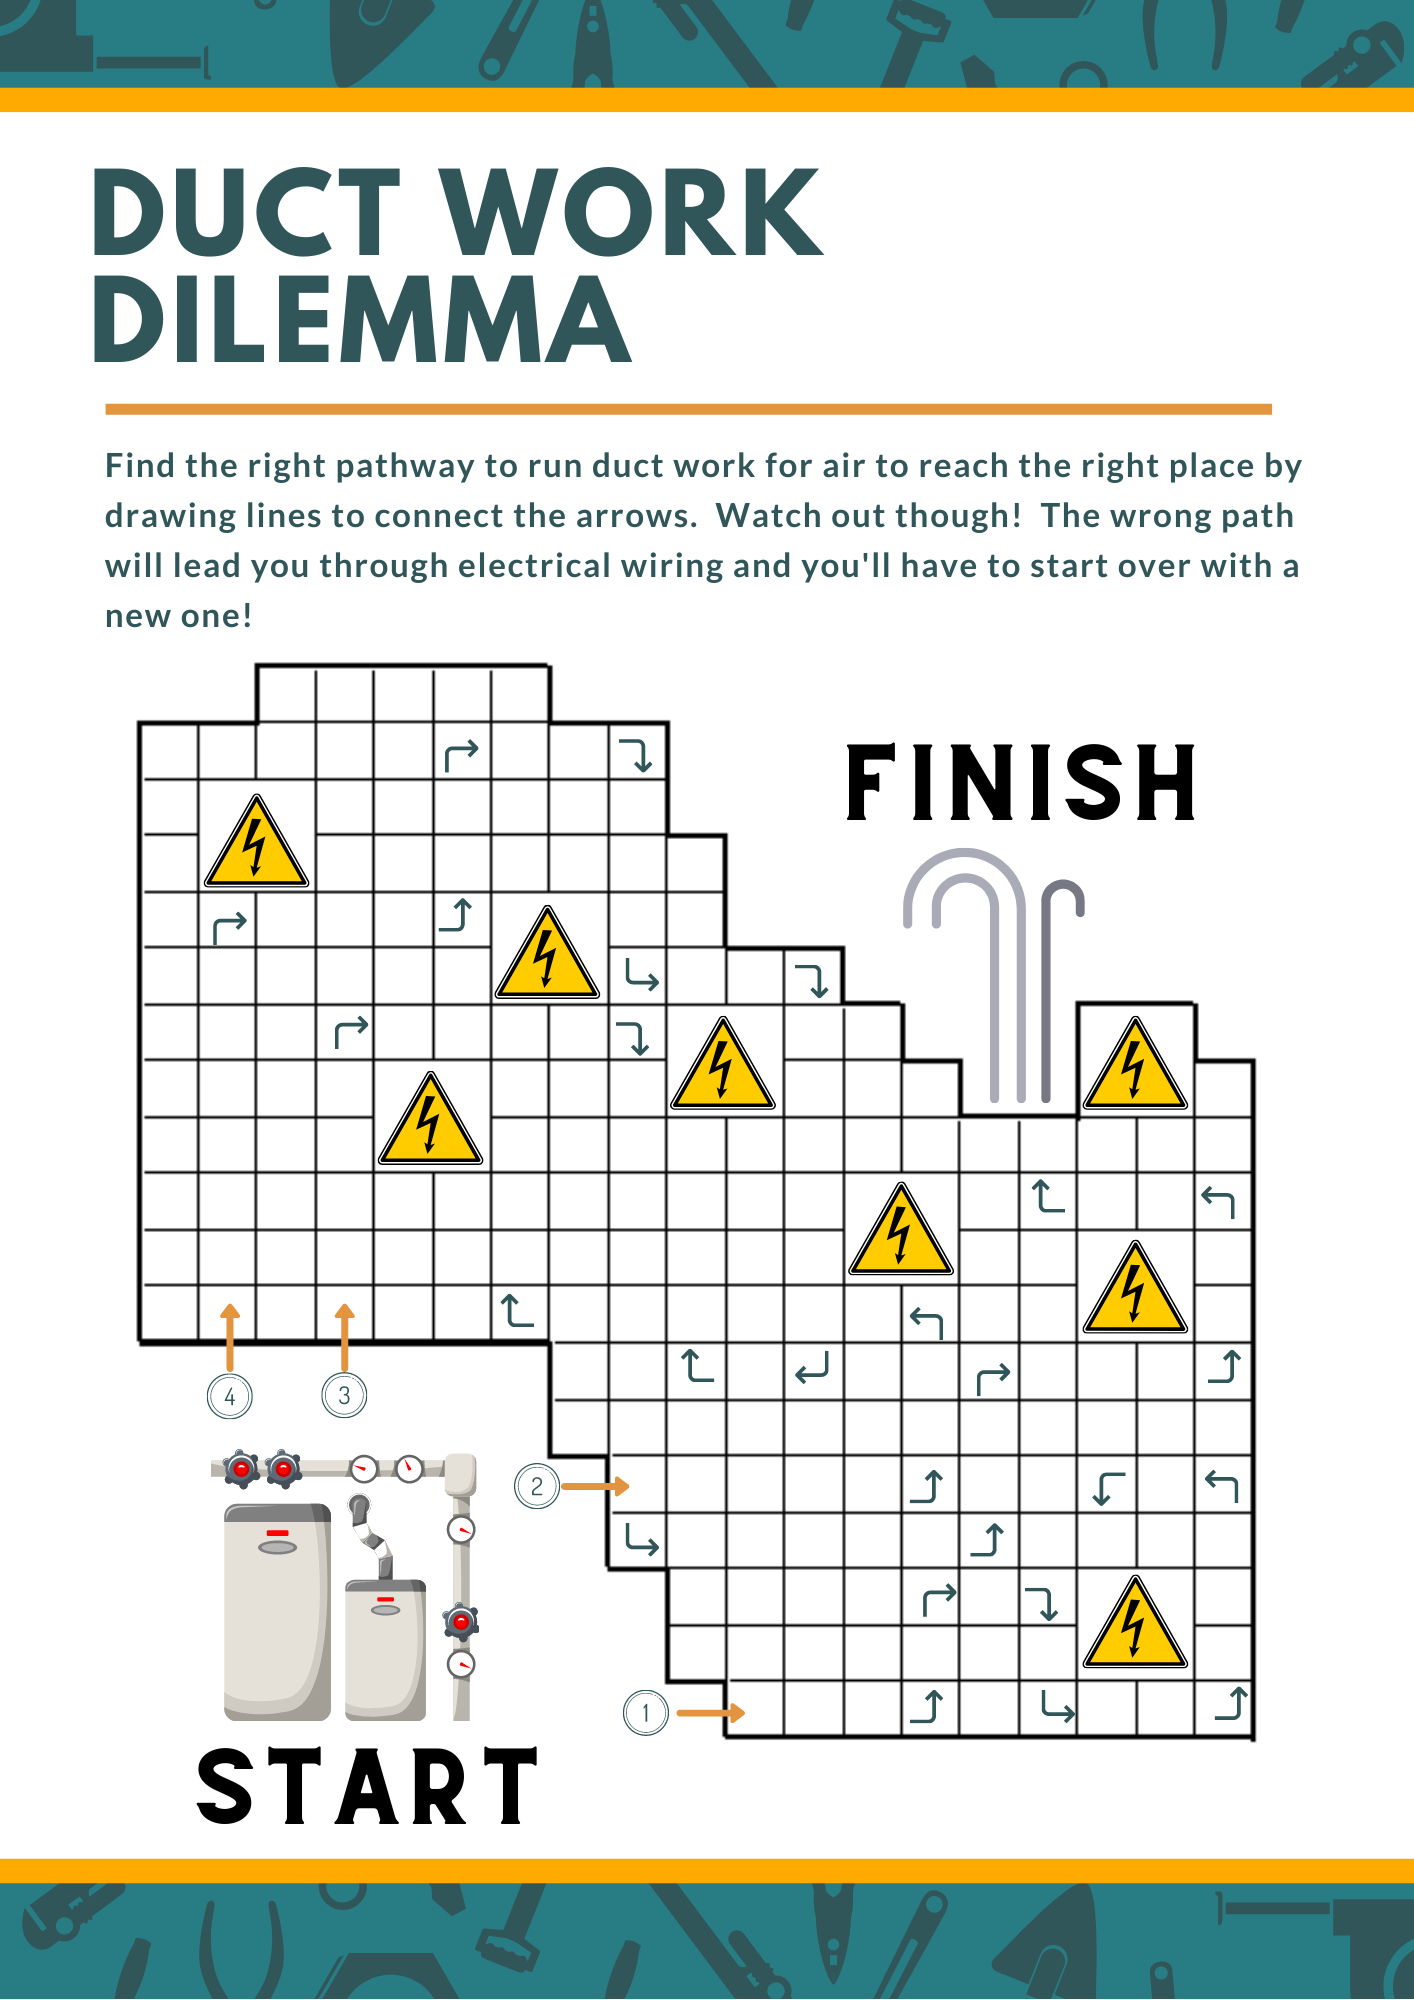 duct-work-dilema-activity-sheet.png